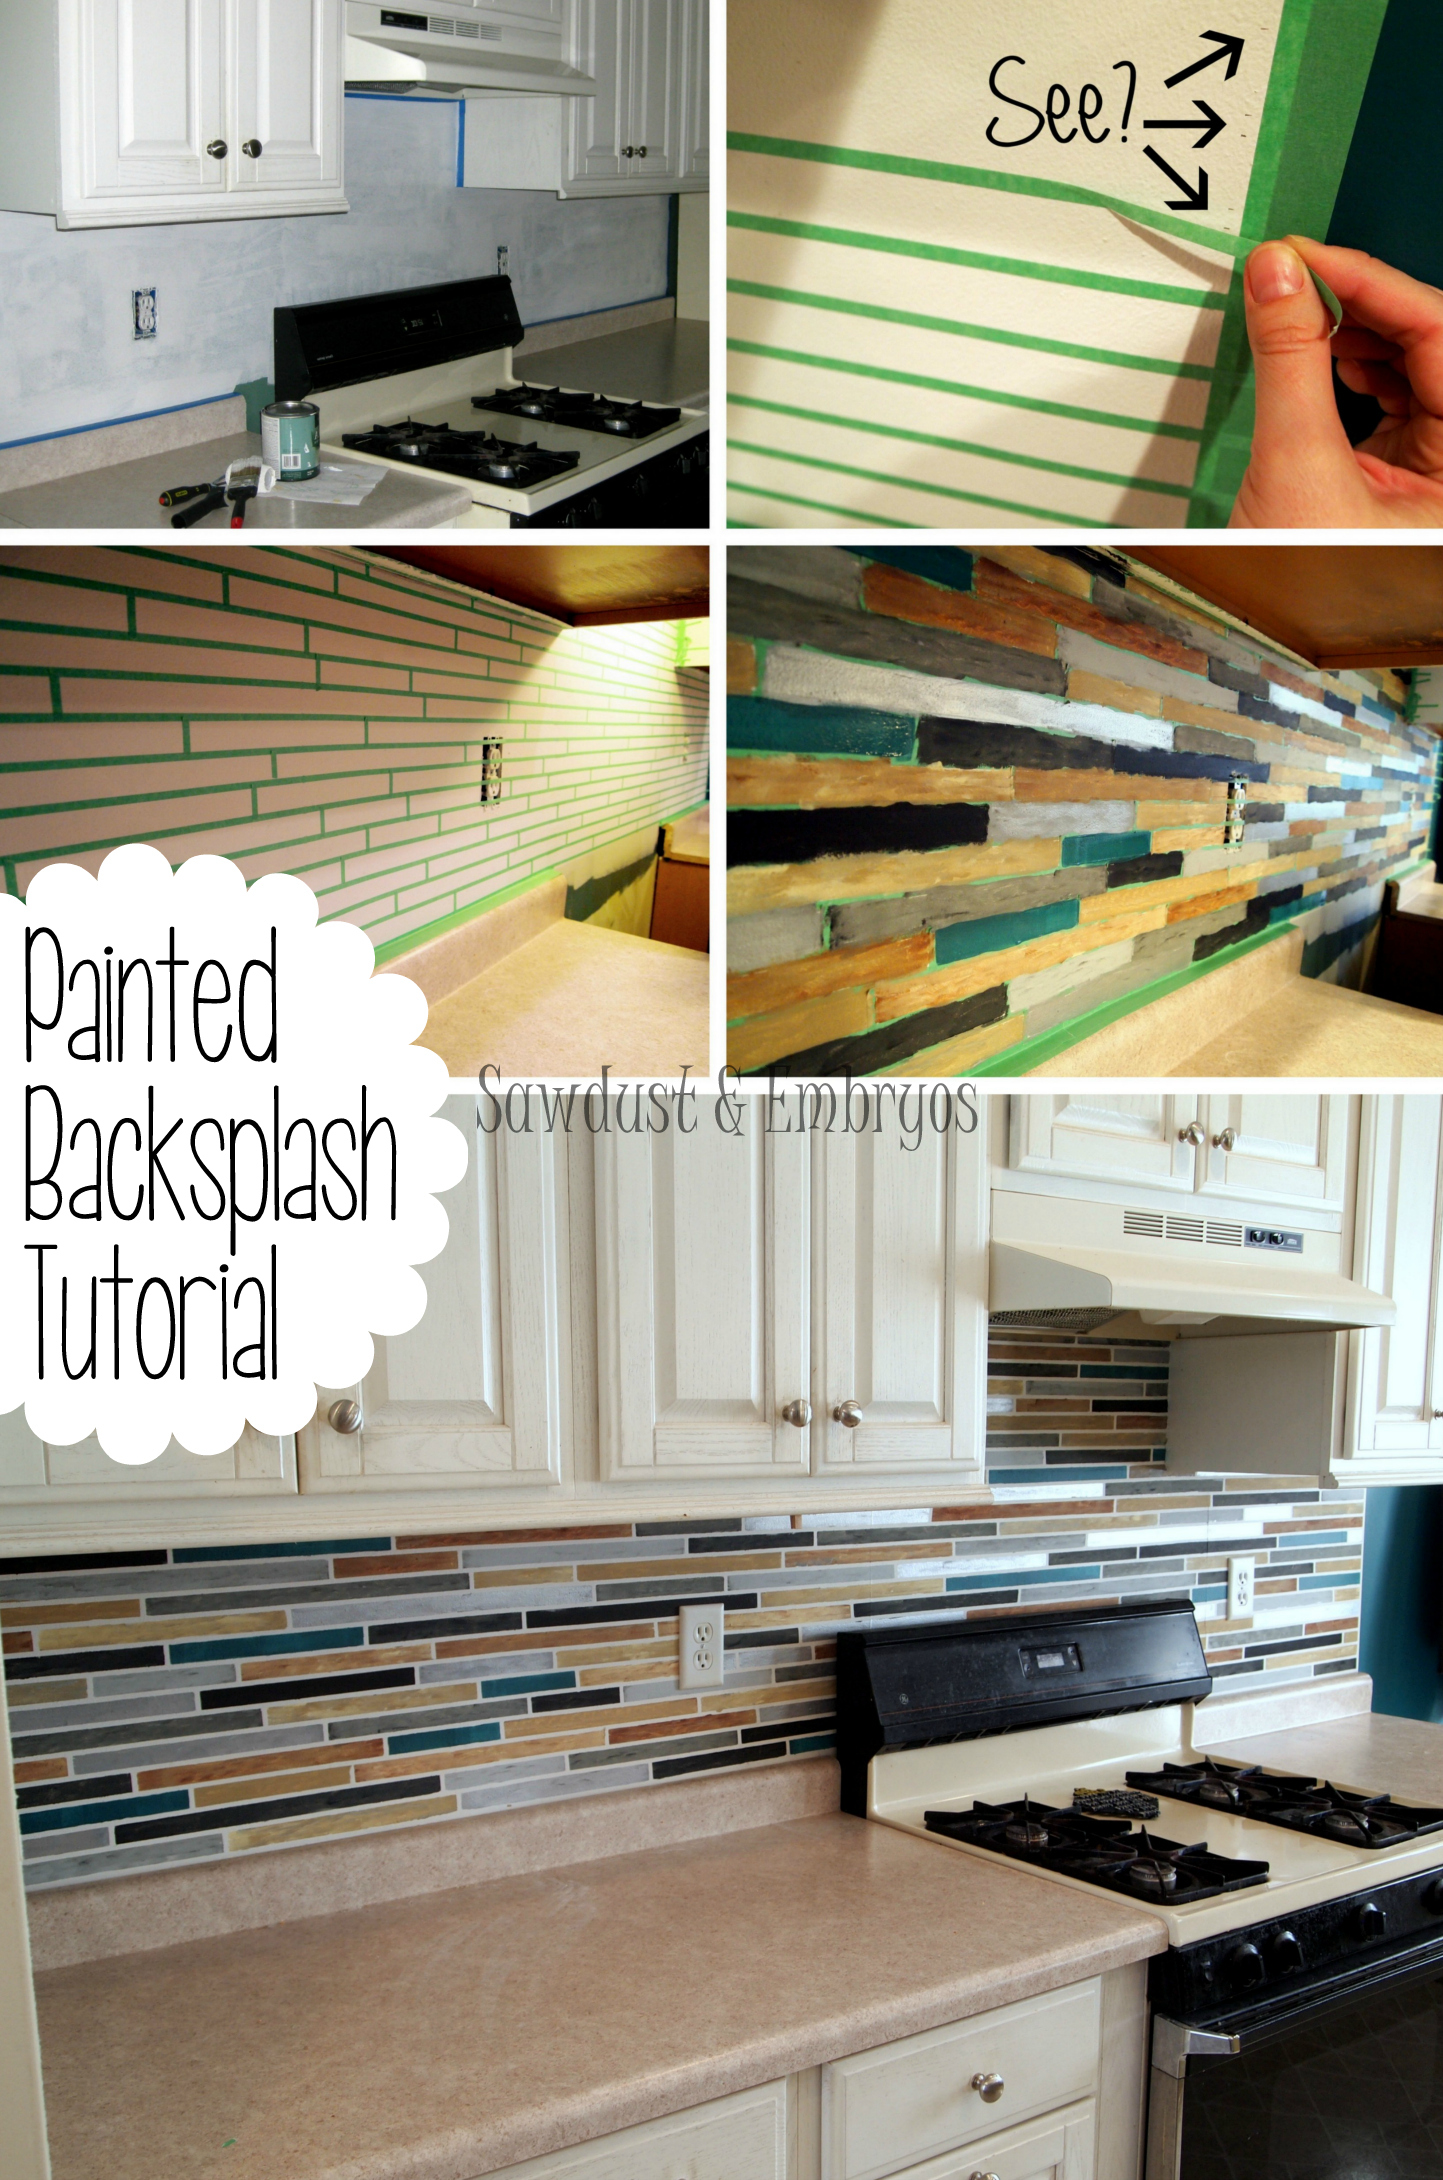 Learn How To Paint Your Backsplash Look Like Custom Tile In This Tutorial